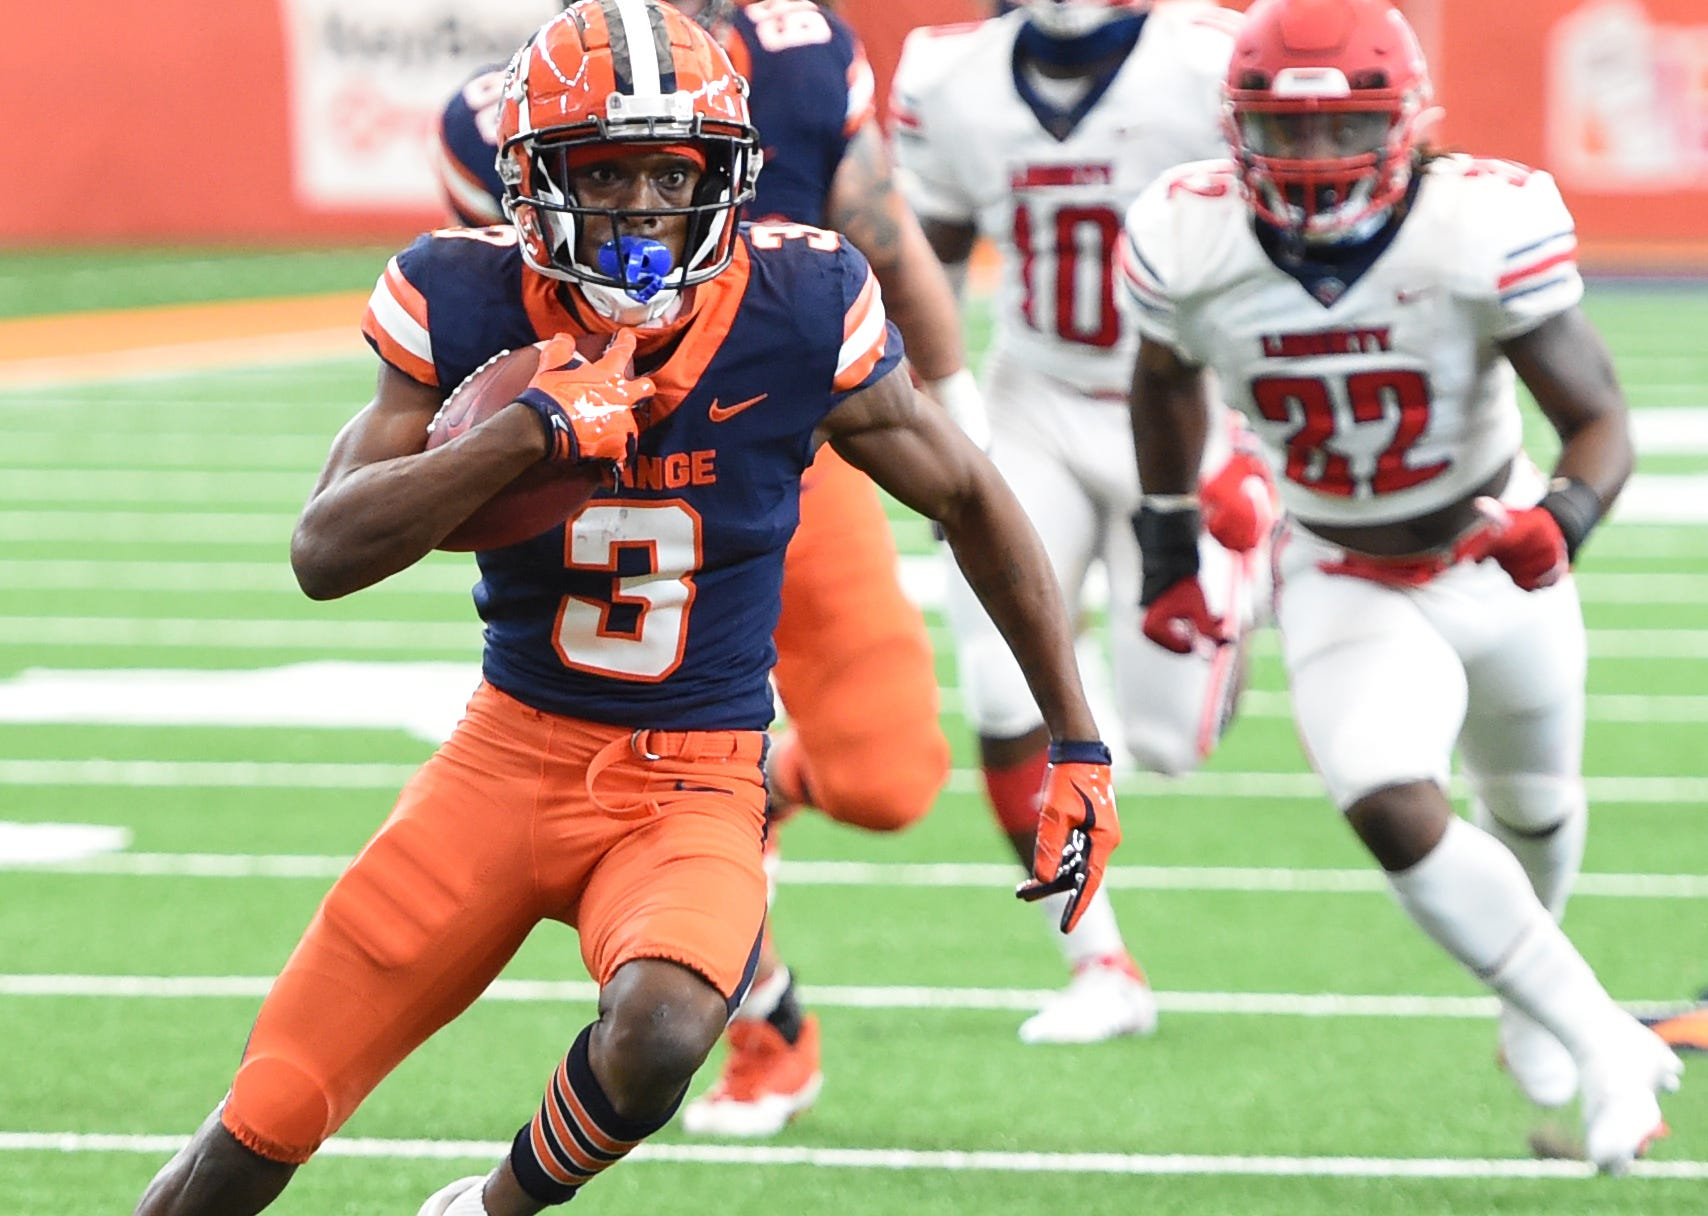 Syracuse receiver doesn't travel with team to Clemson after making obscene gesture in last week's game